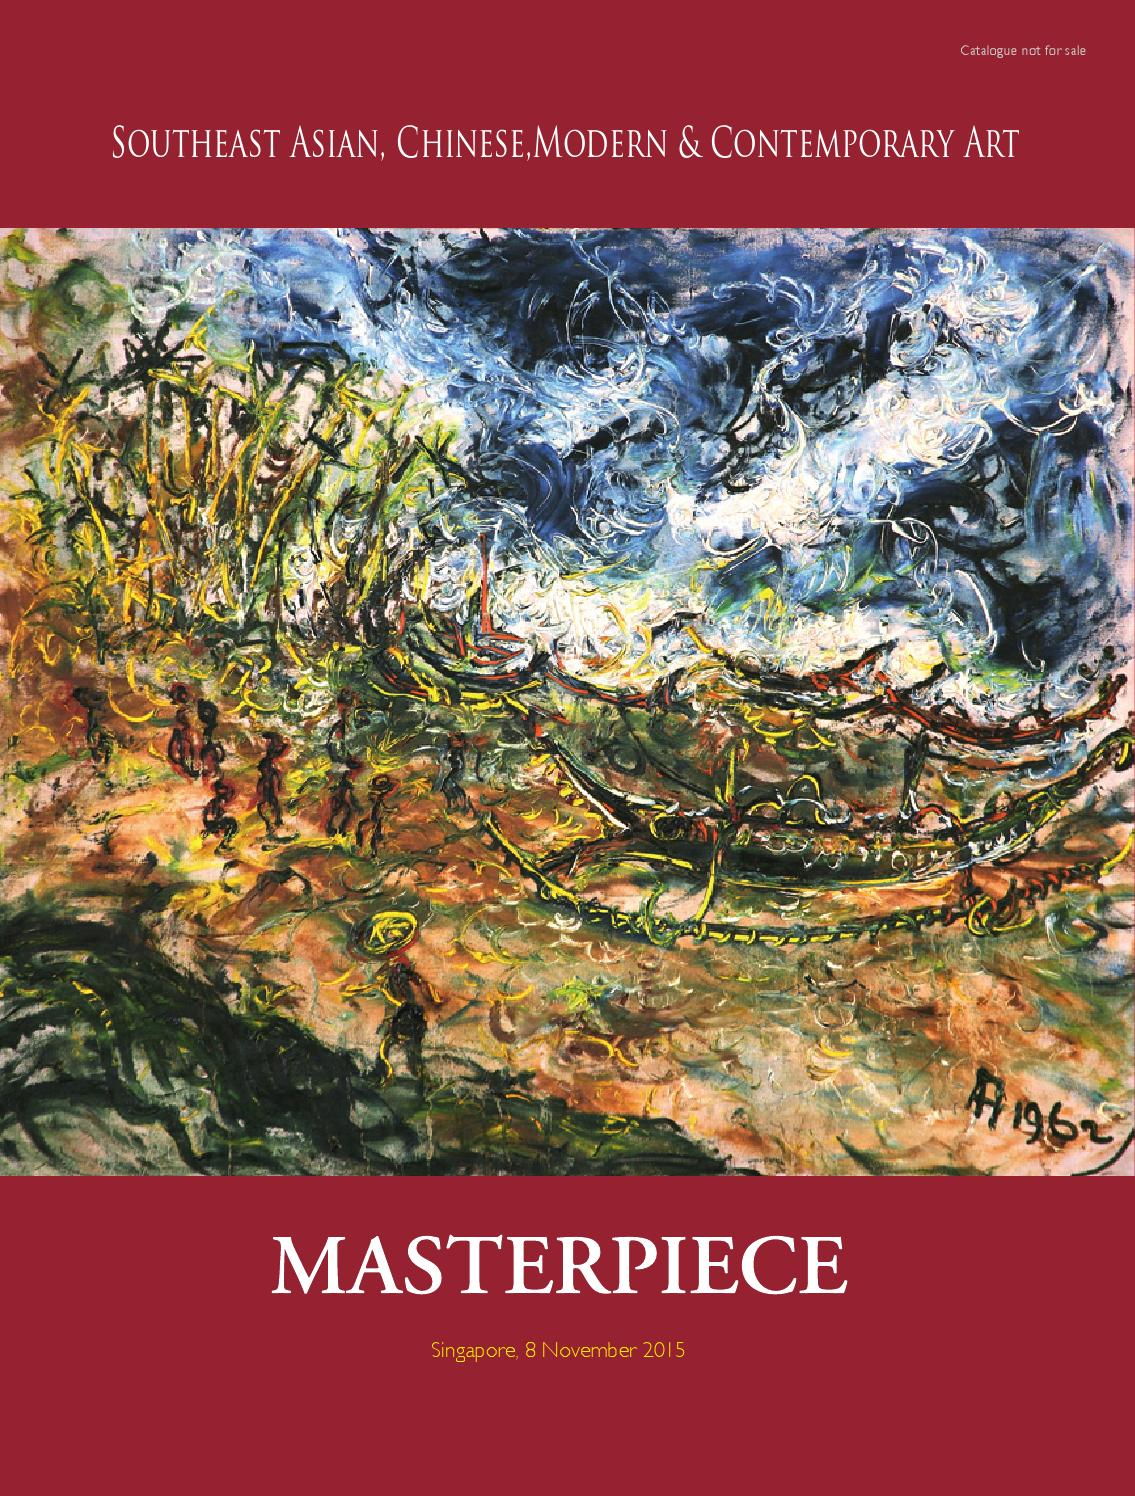 MASTERPIECE Singapore By MASTERPIECE Auction House Indonesia